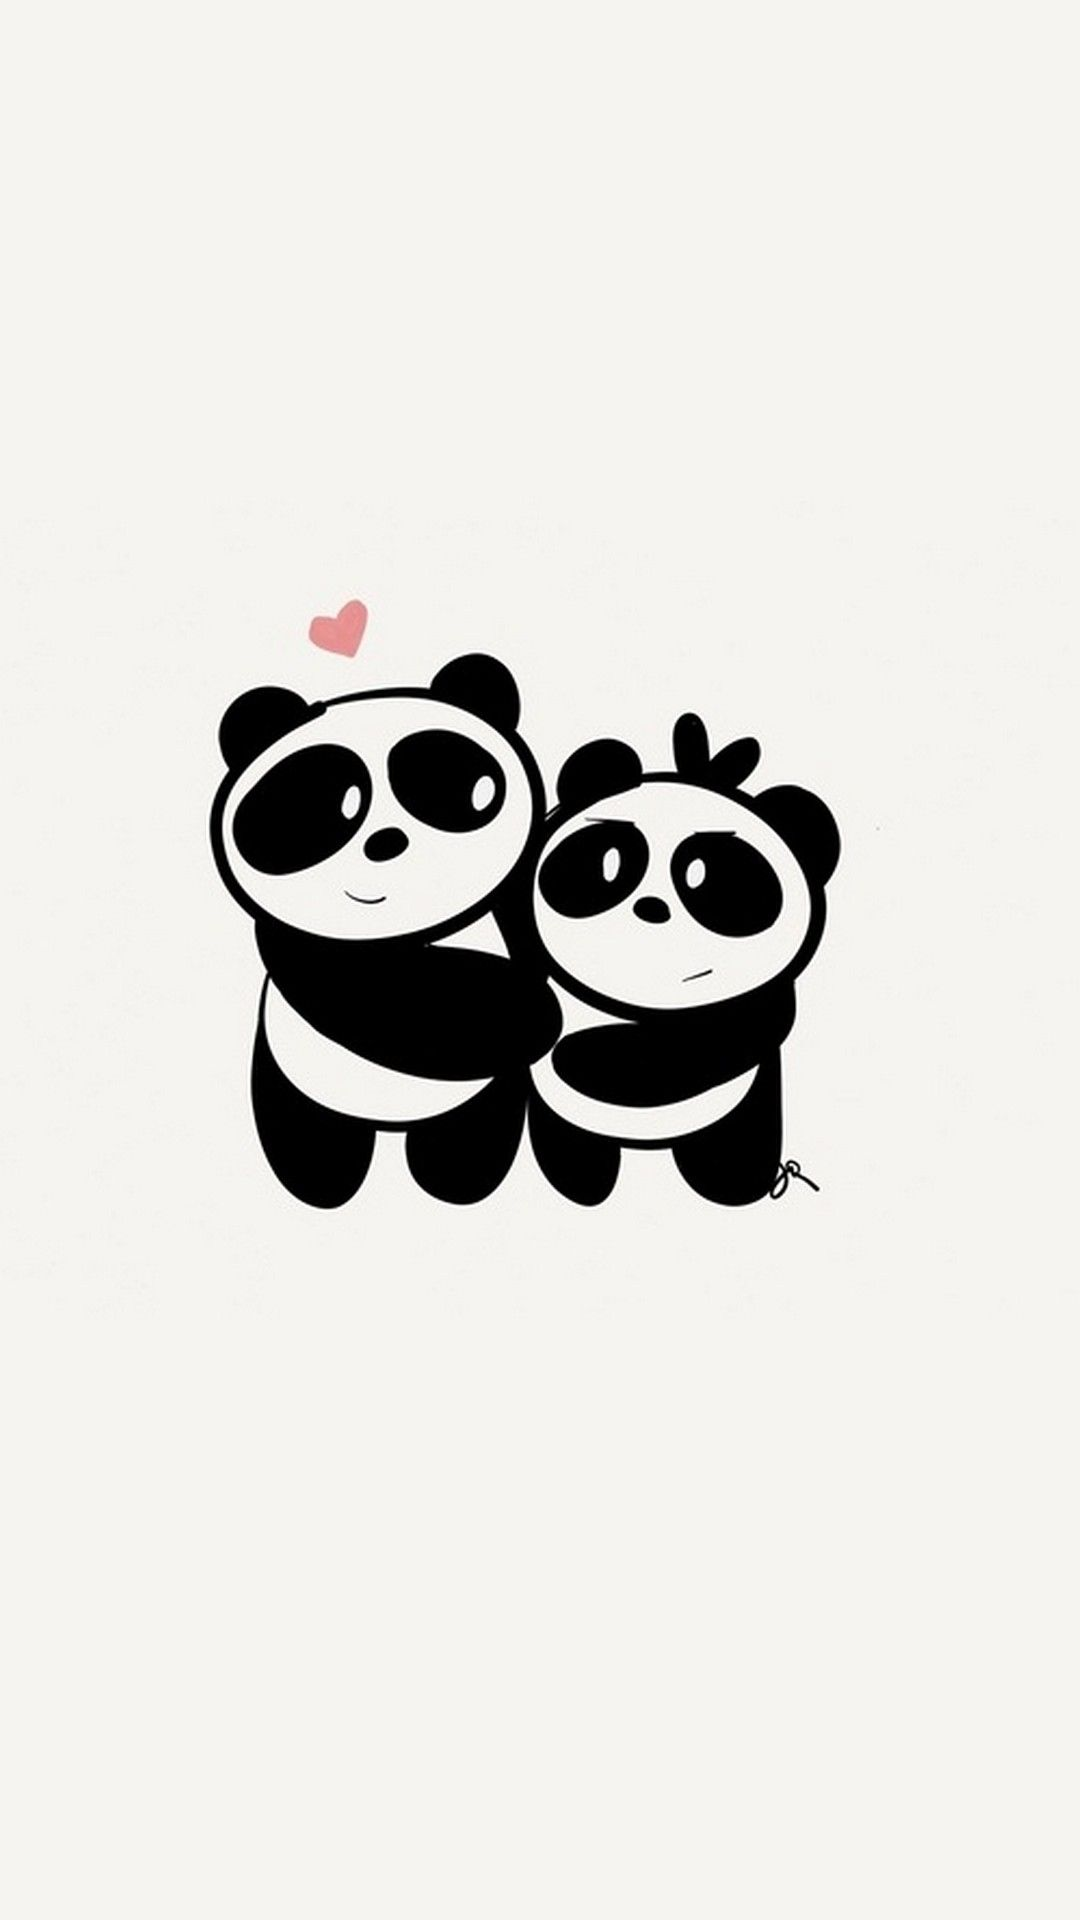 iphone x cute couple panda wallpaper - 2018 iphone wallpapers